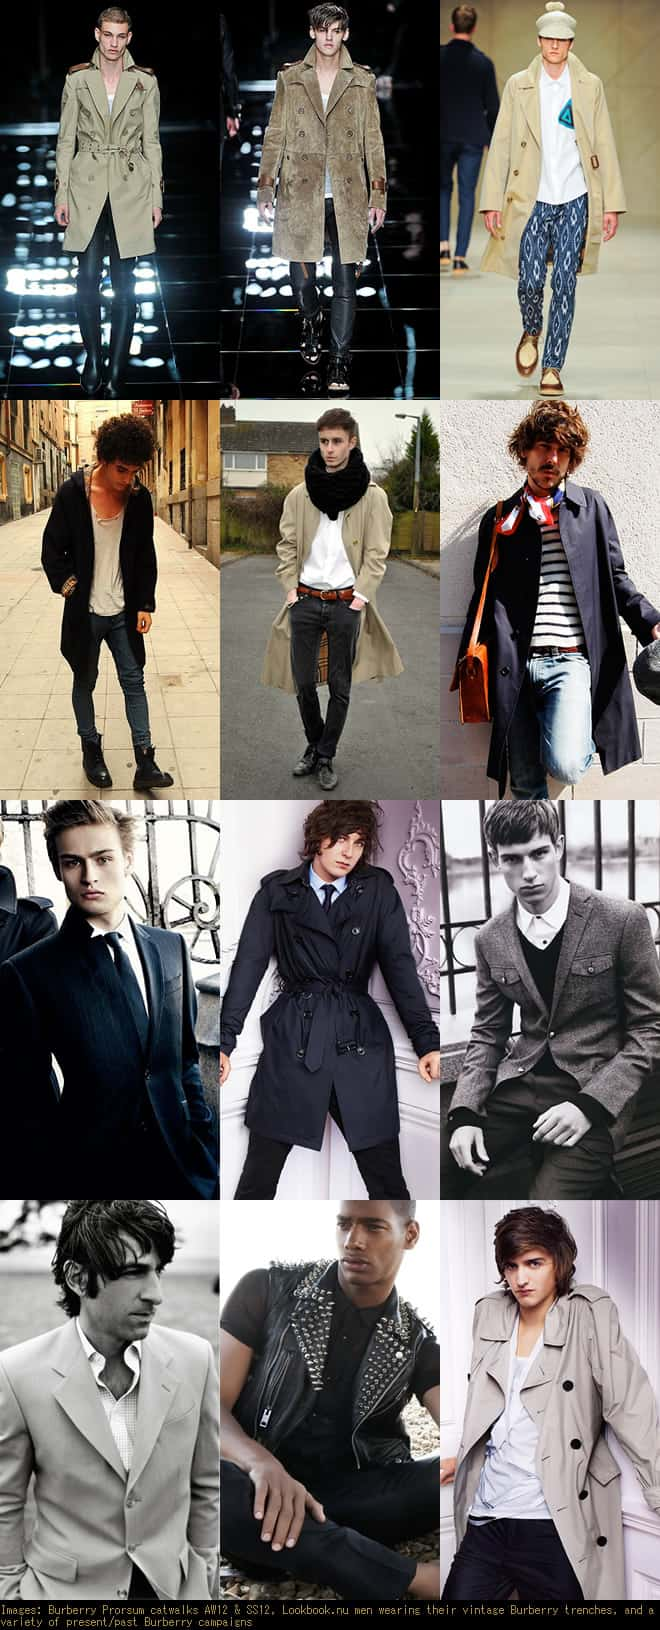 The Burberry Men's Look Book